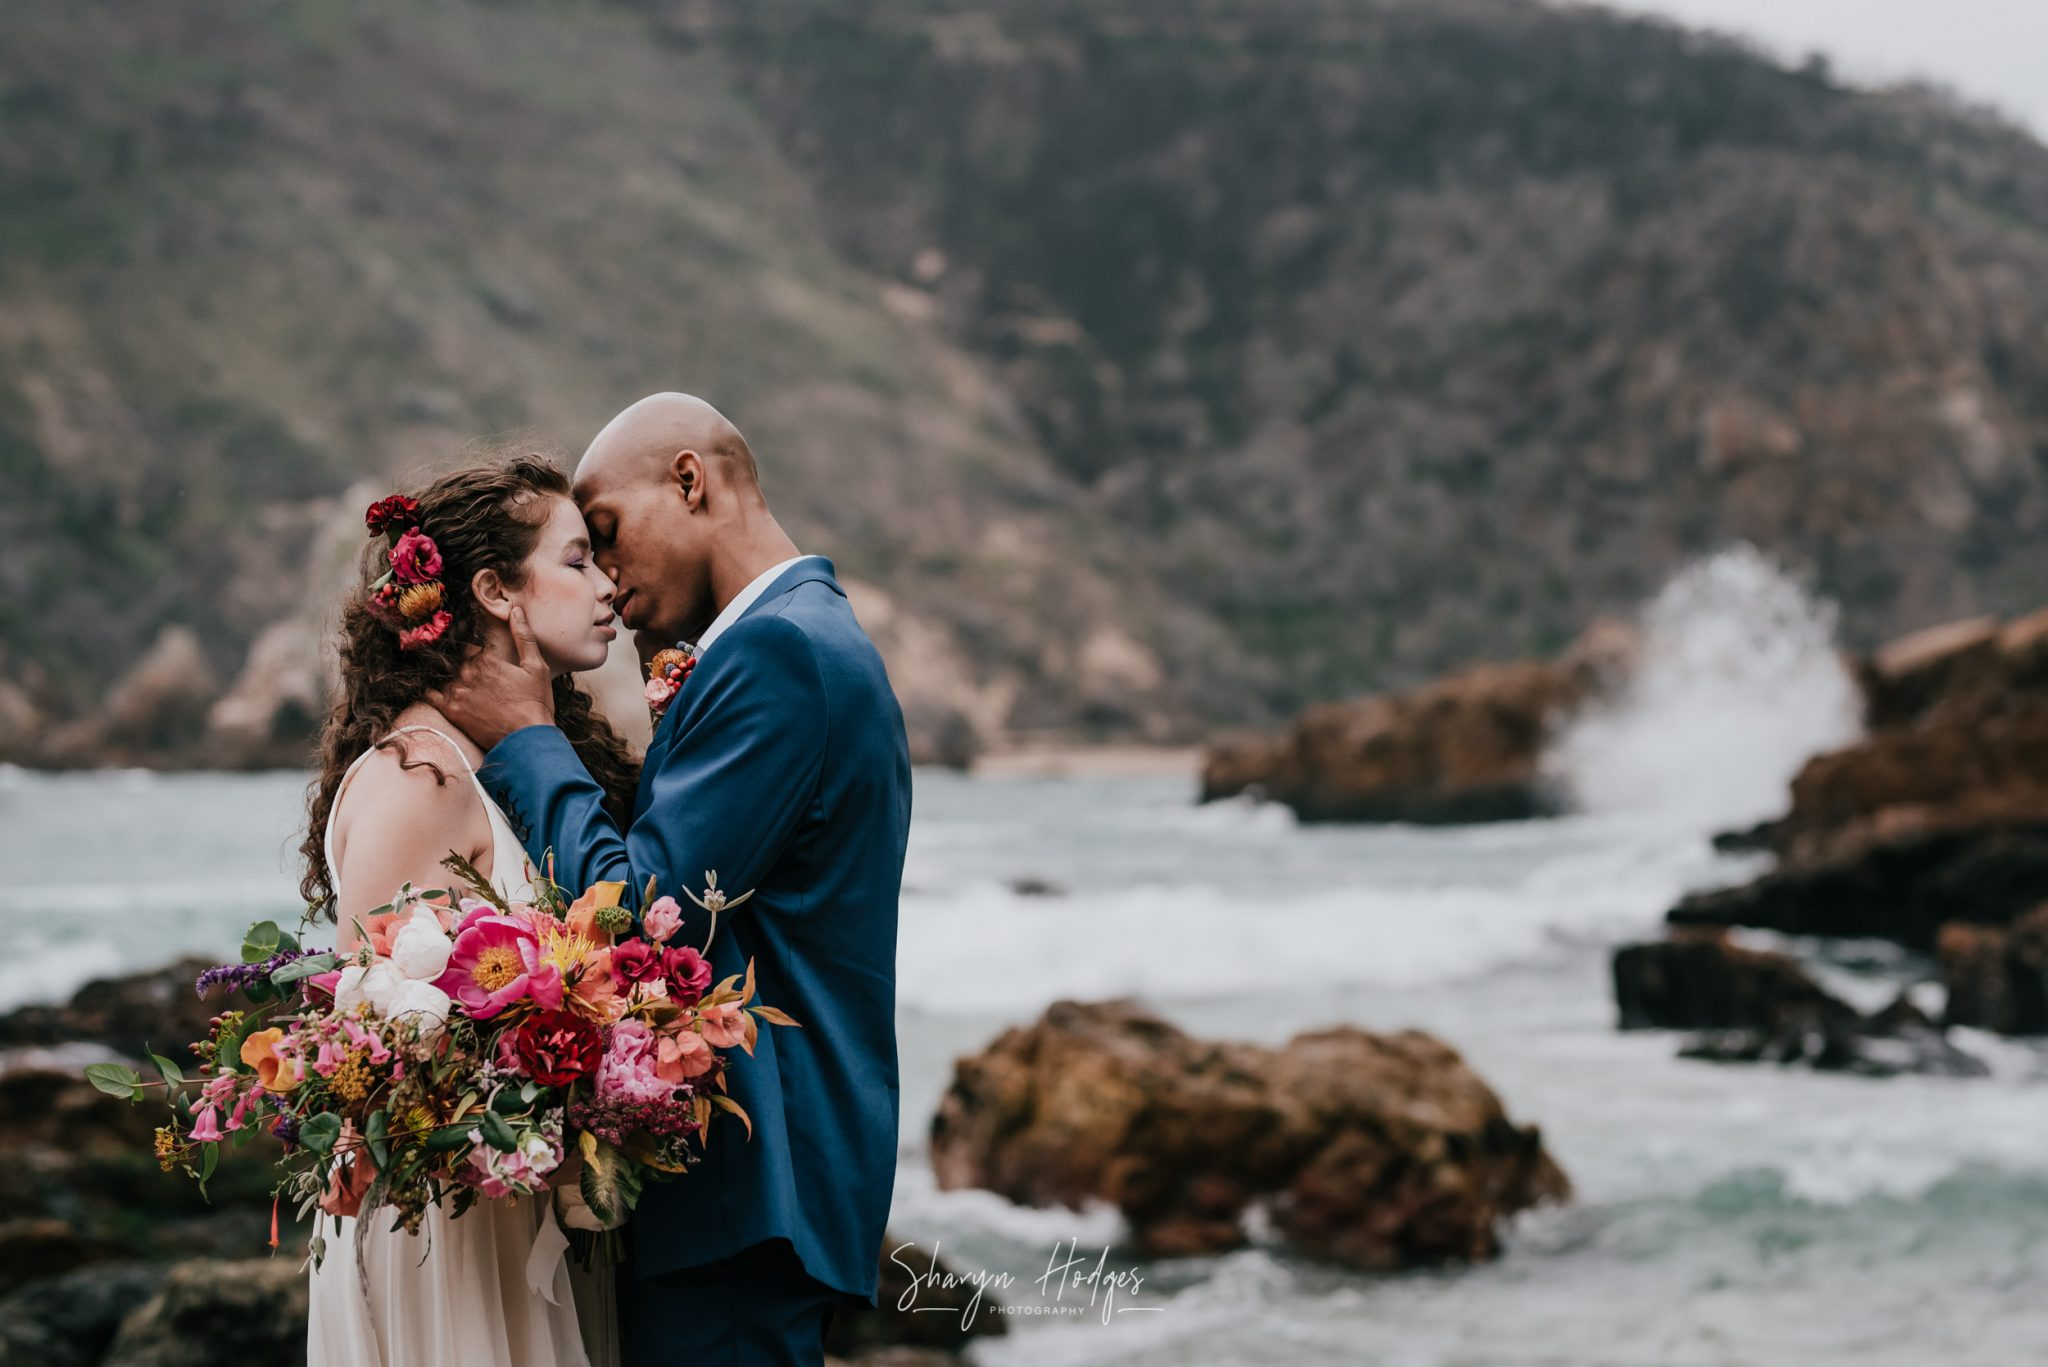 Sharyn Hodges, garden route wedding photographer, Knysna wedding, the Knysna heads, wedding venue, inter racial wedding, Plettenberg bay